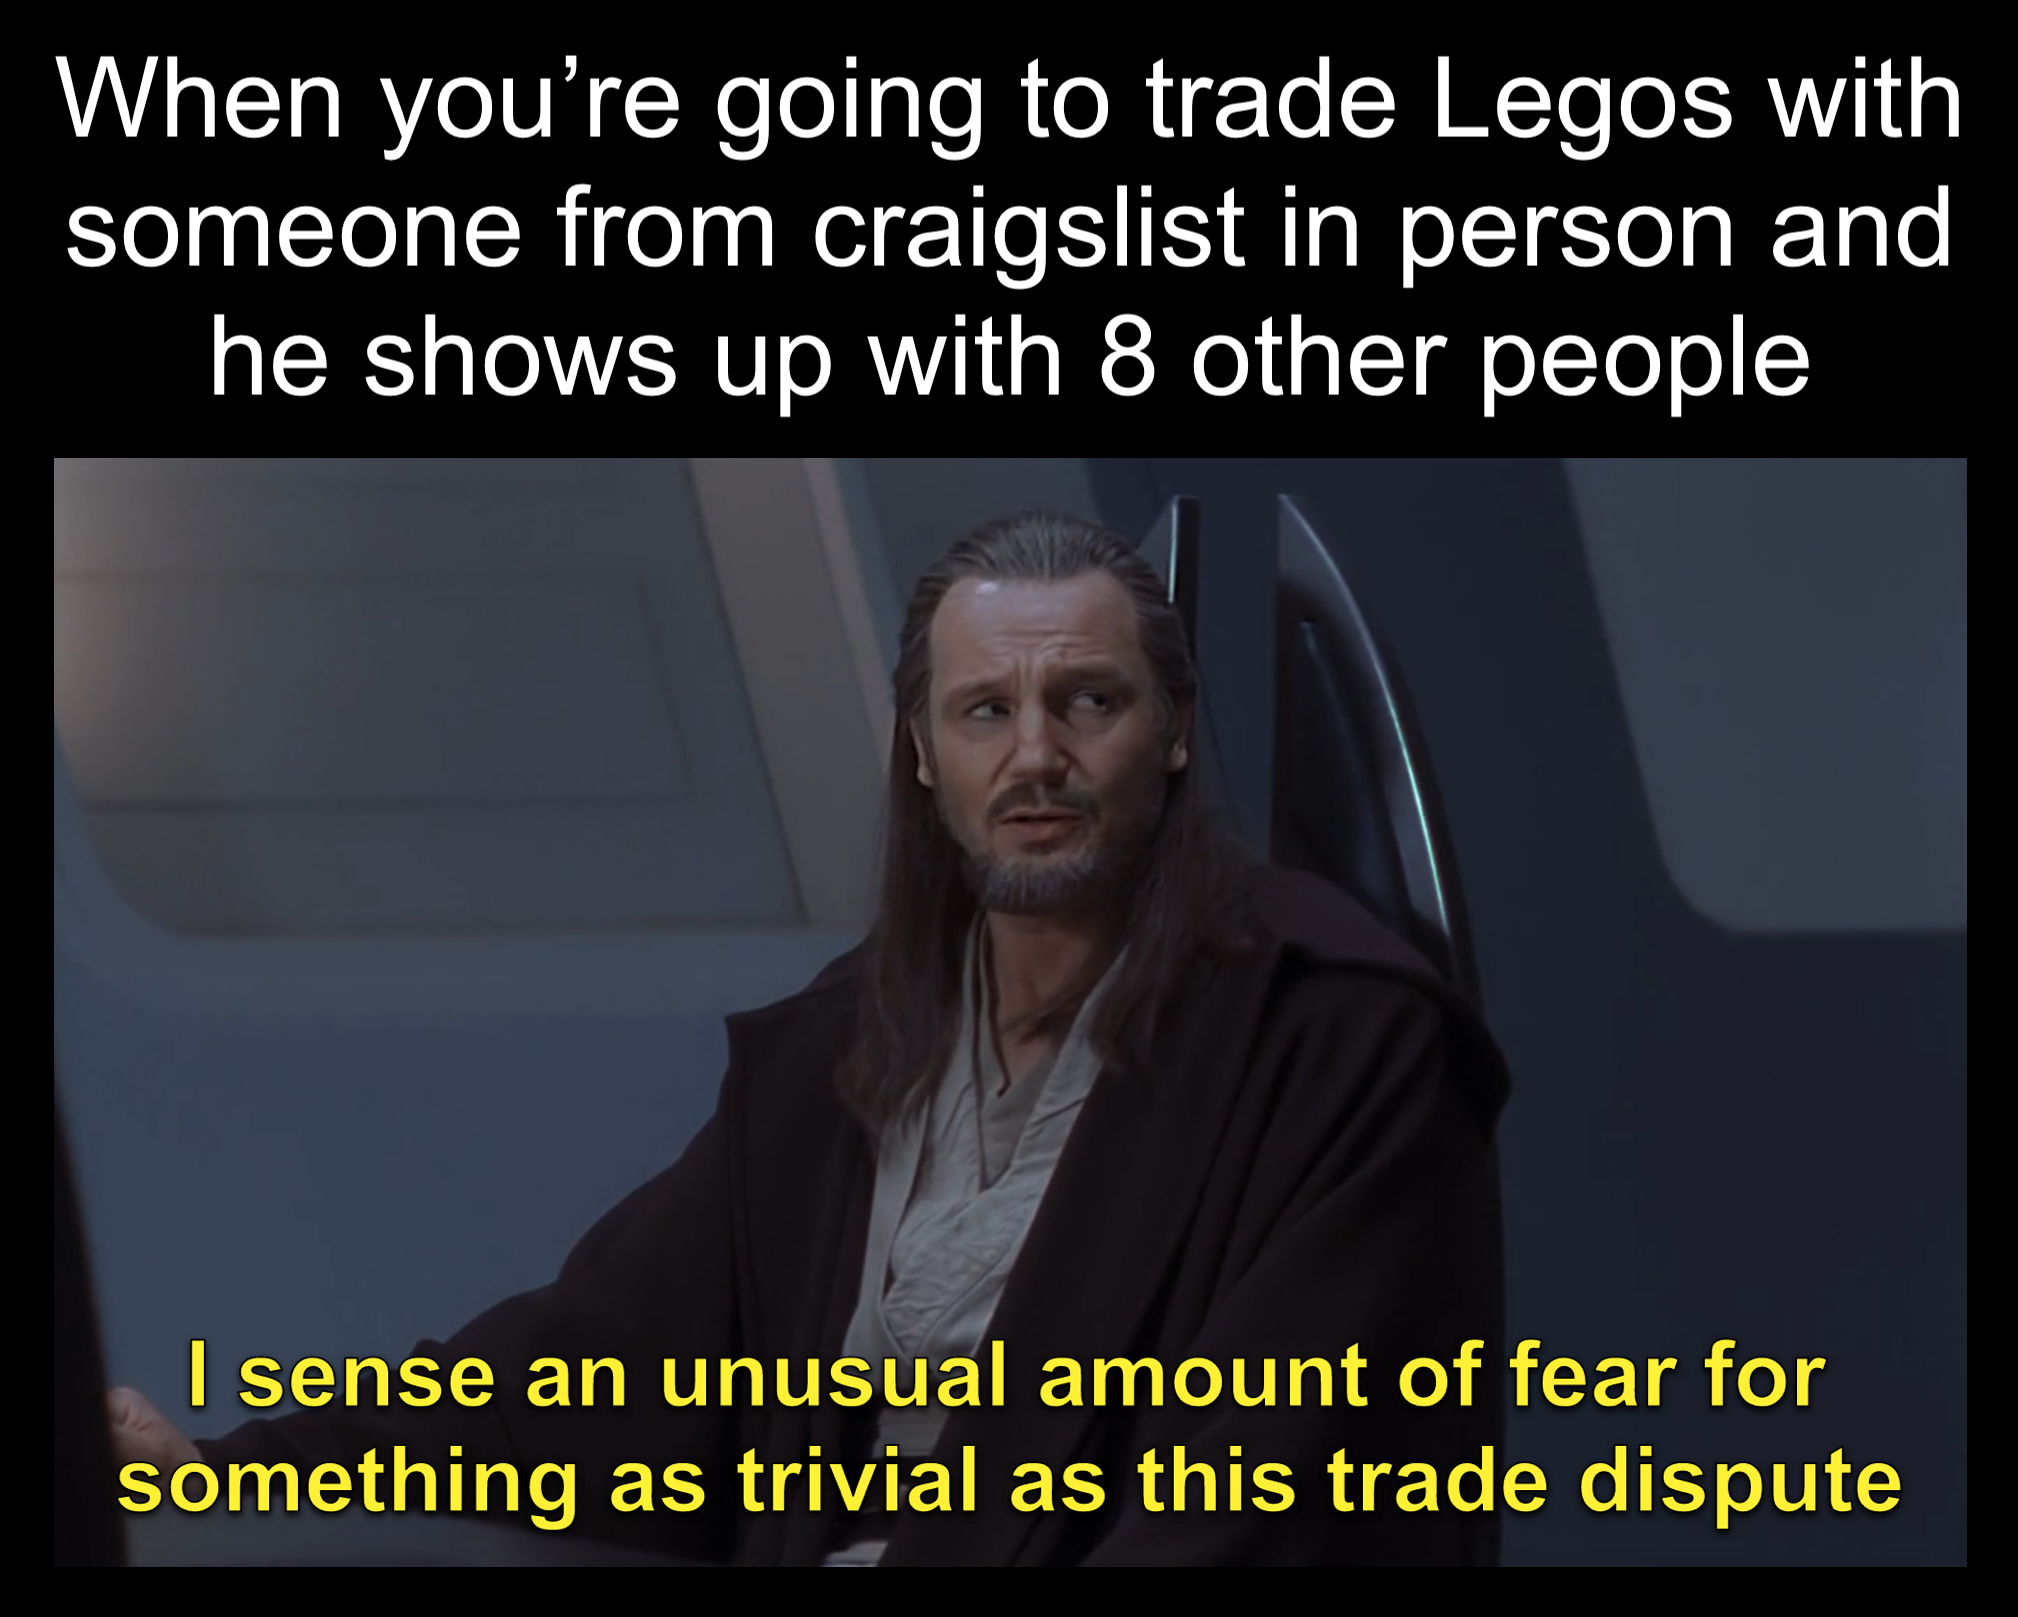 The negotiations were short